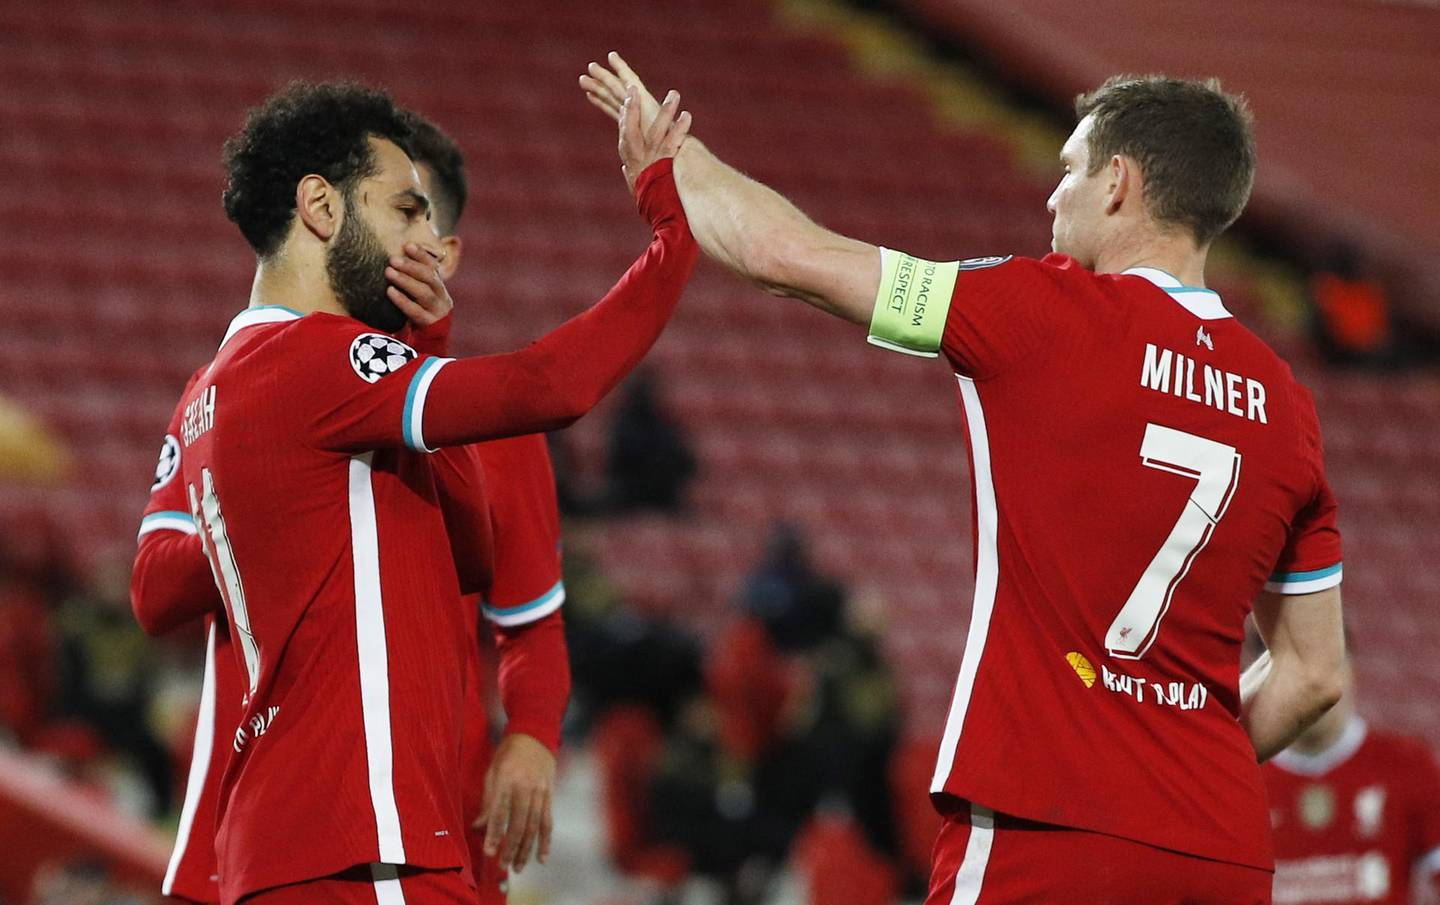 epa08779340 Liverpool's Mohamed Salah (L) celebrates with team mate James Milner after scoring the 2-0 goal during the UEFA Champions League group D match between Liverpool and Midtjylland in Liverpool, Britain, 27 October 2020.  EPA/Phil Noble / POOL